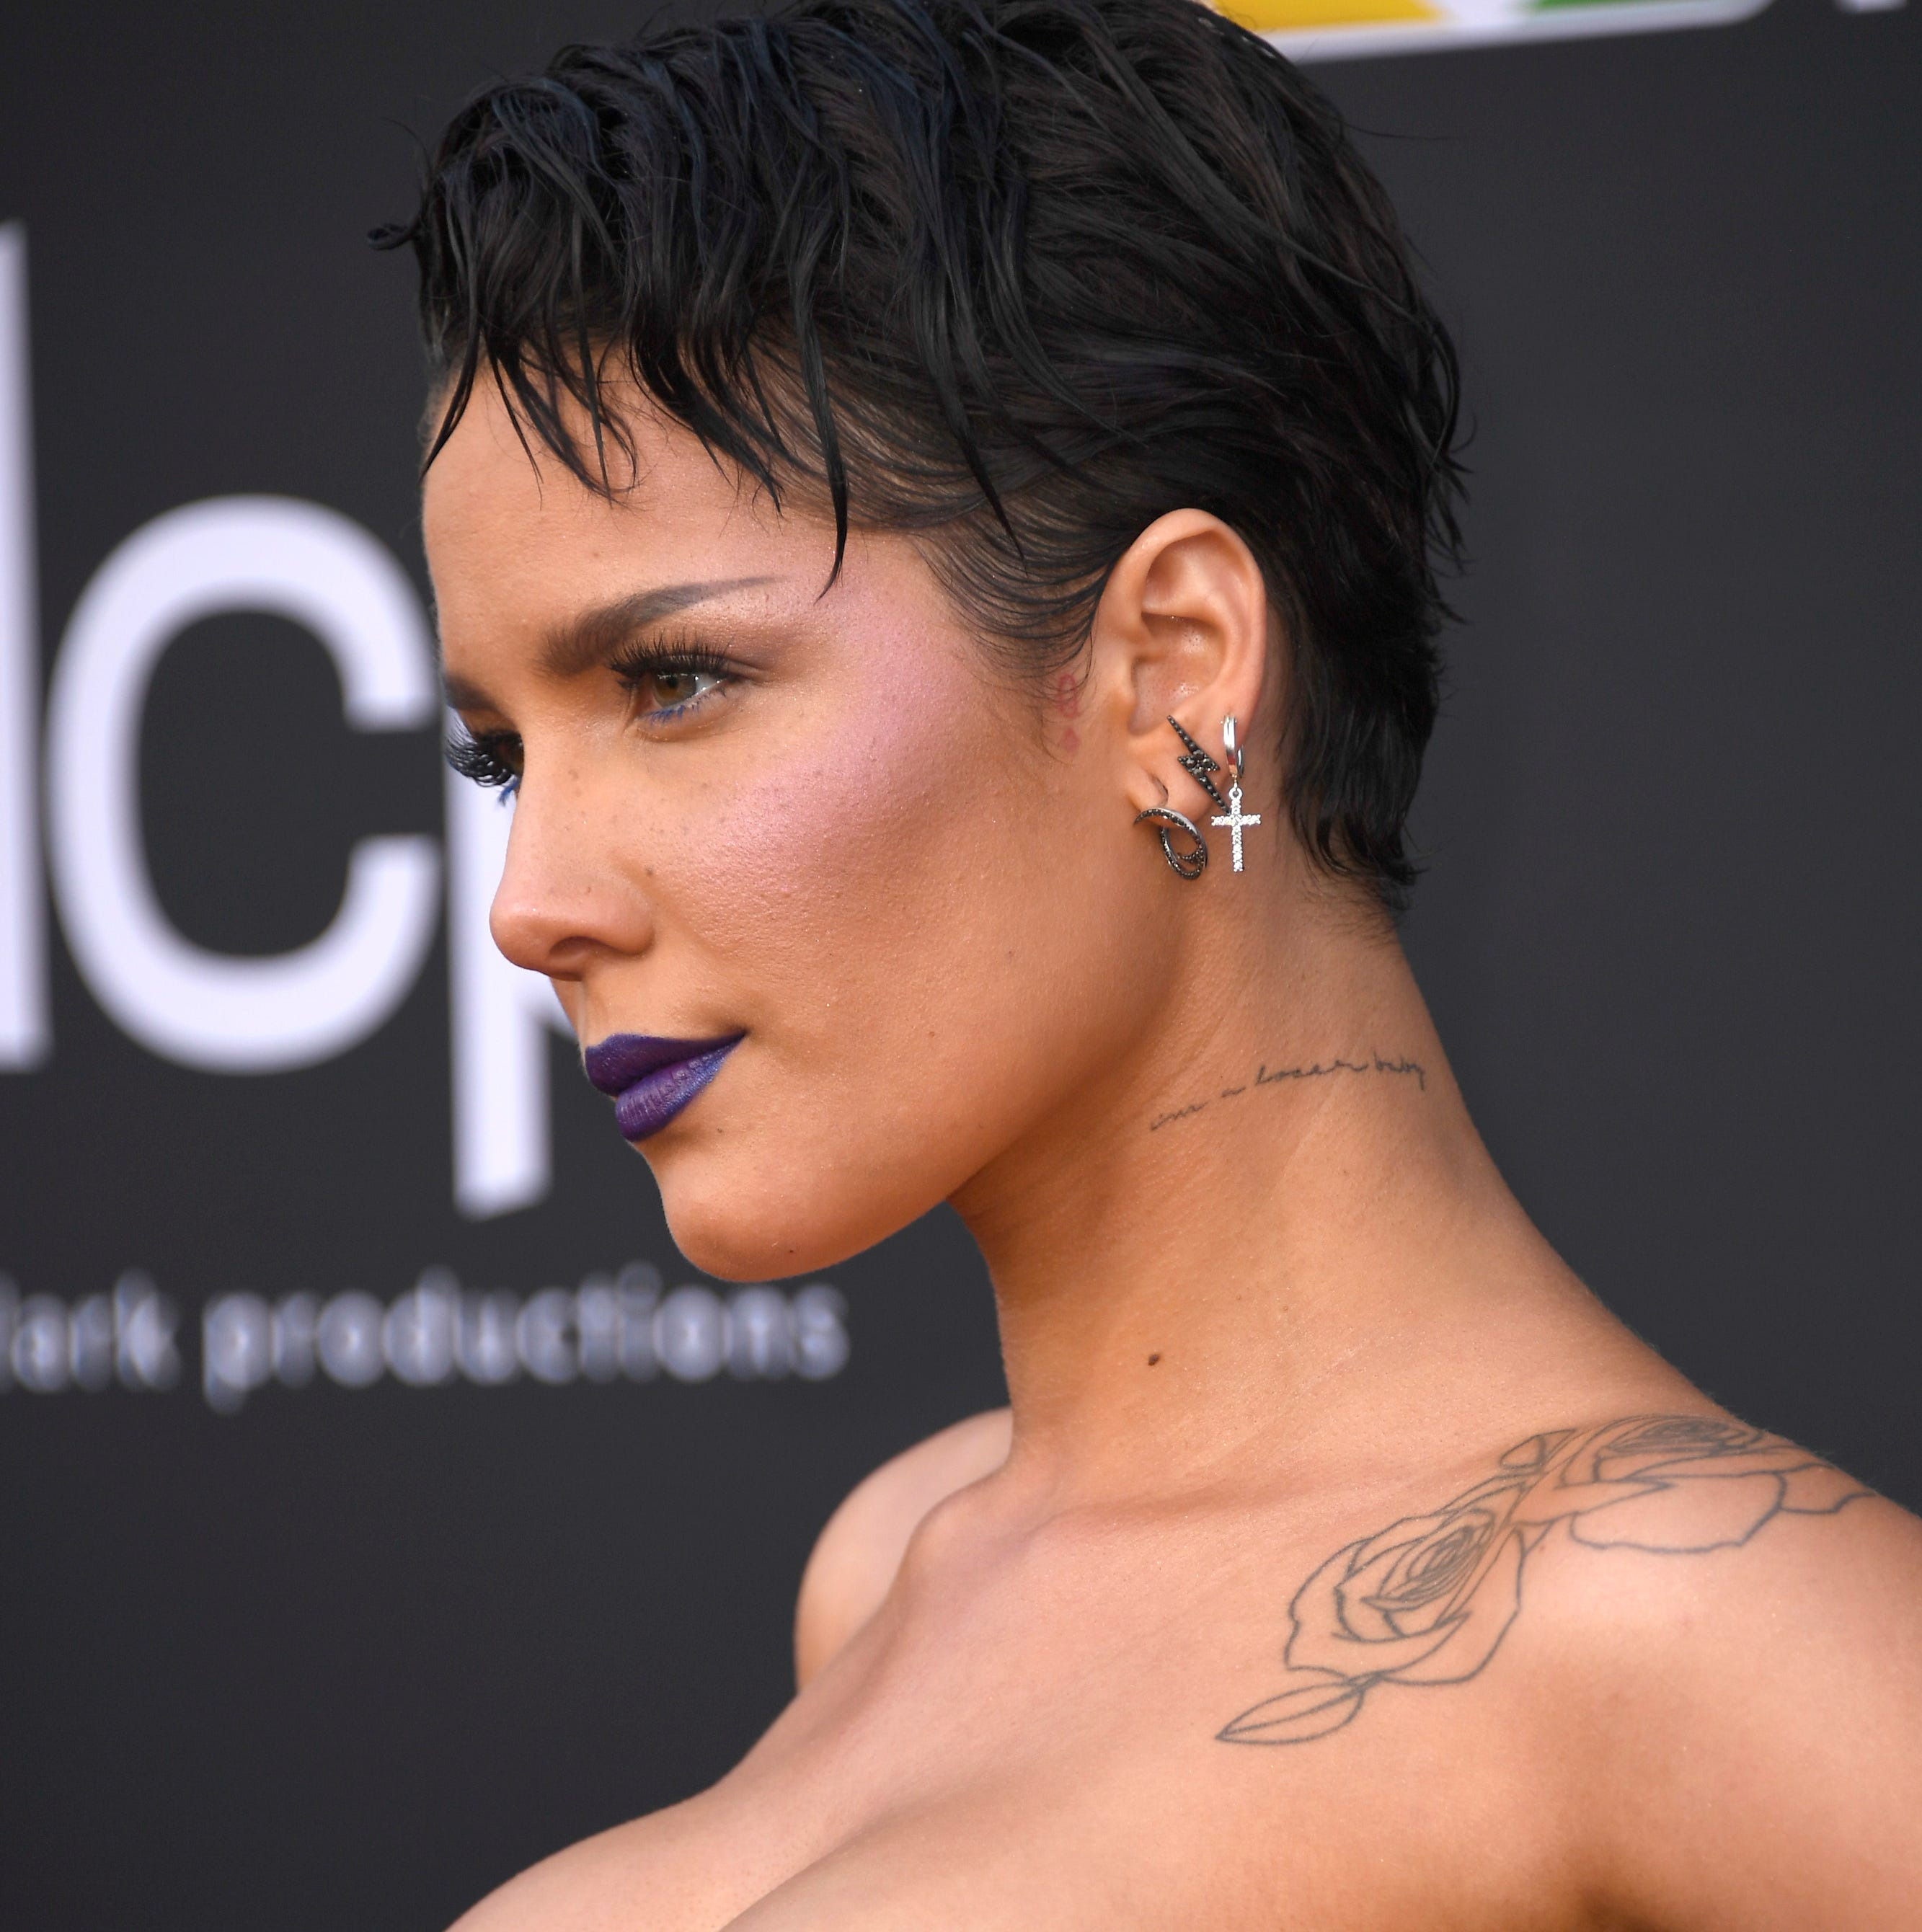 Singer Halsey covers the cost of Penn State grad's speeding ticket after jamming to 'Nightmare'